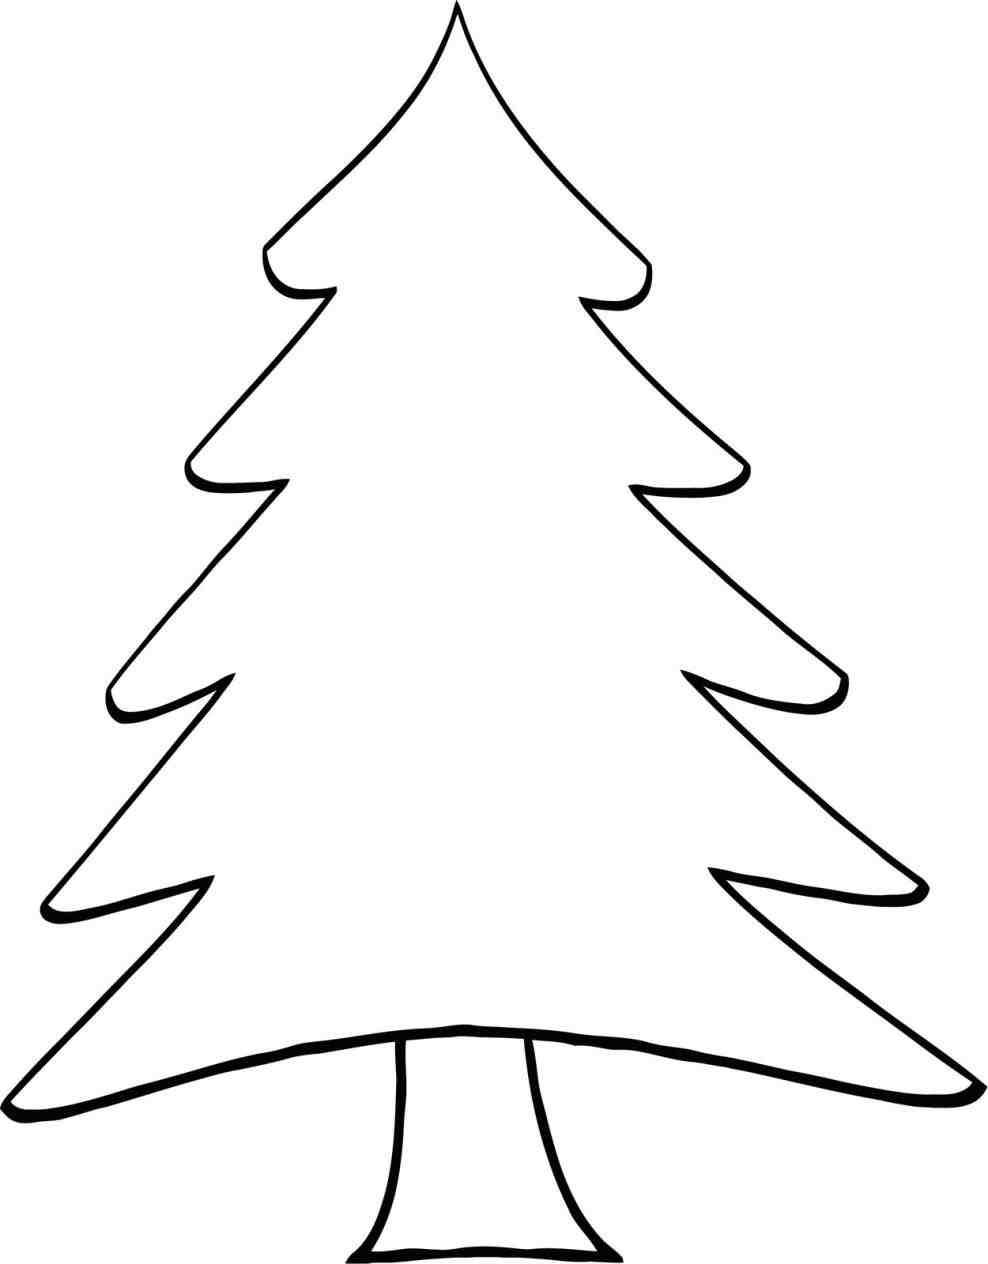 988x1264 Decoration Simple Coloring Pages Simple Cartoon Tree Coloring Page Christmas Tree Clipart Christmas Tree Template